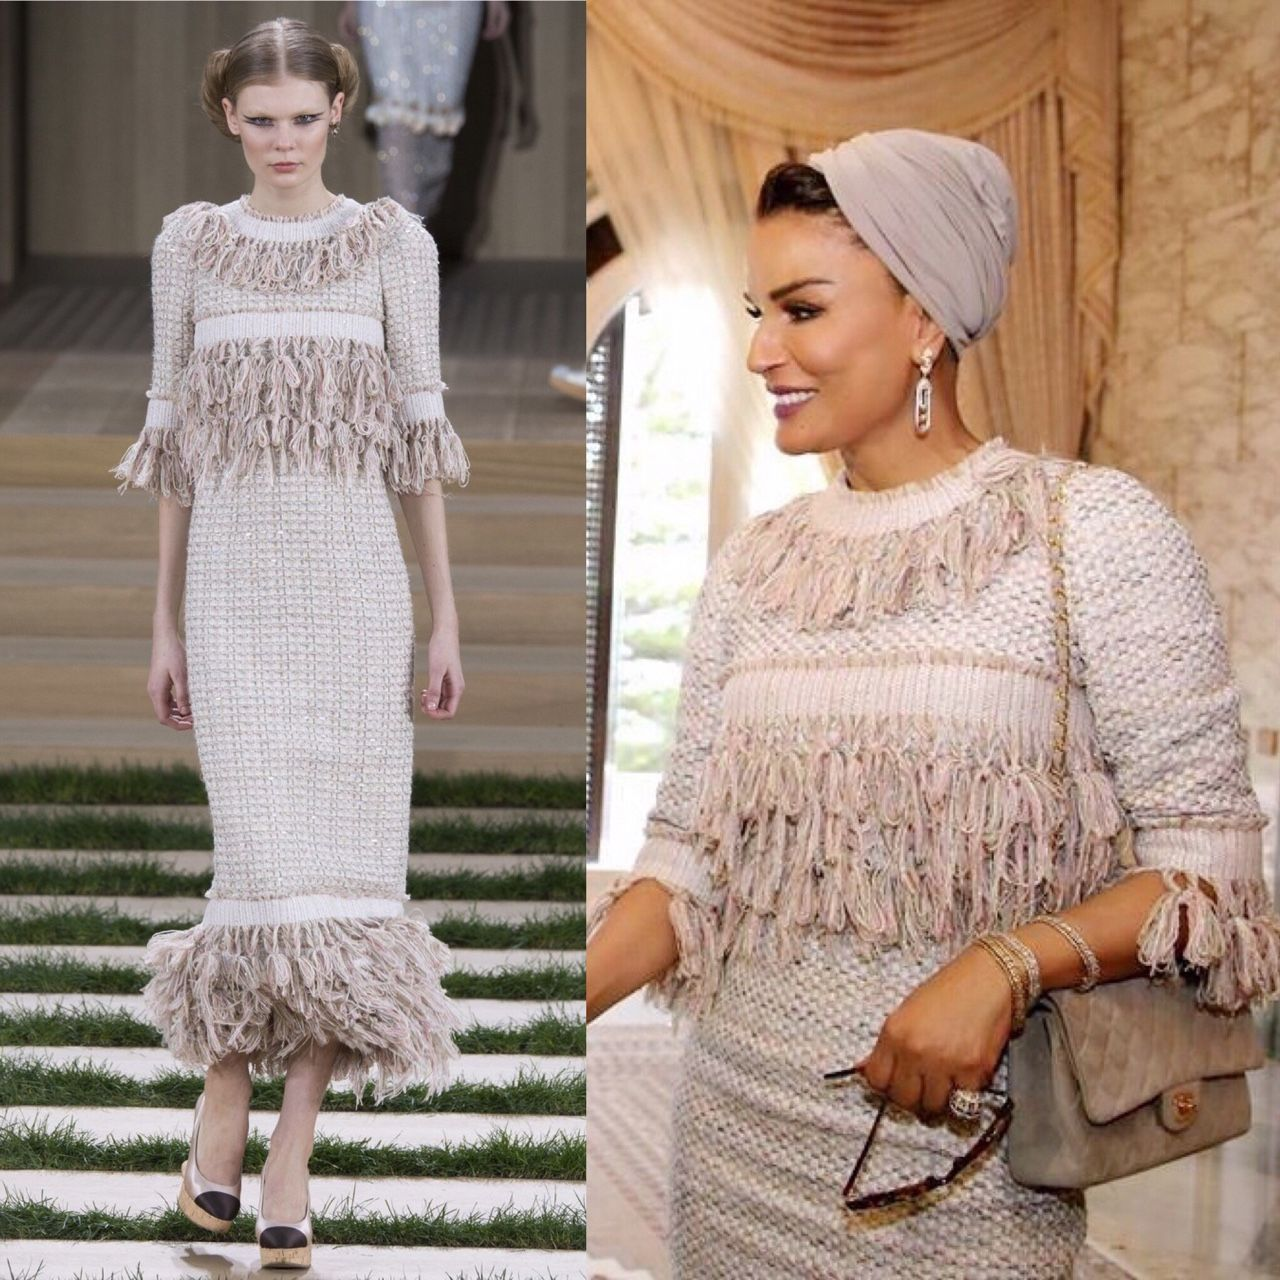 The dress is chanel - It Is Chanel Time Sheikha Mozah Looked Very Chic In Chanel Couture Ensemble From The